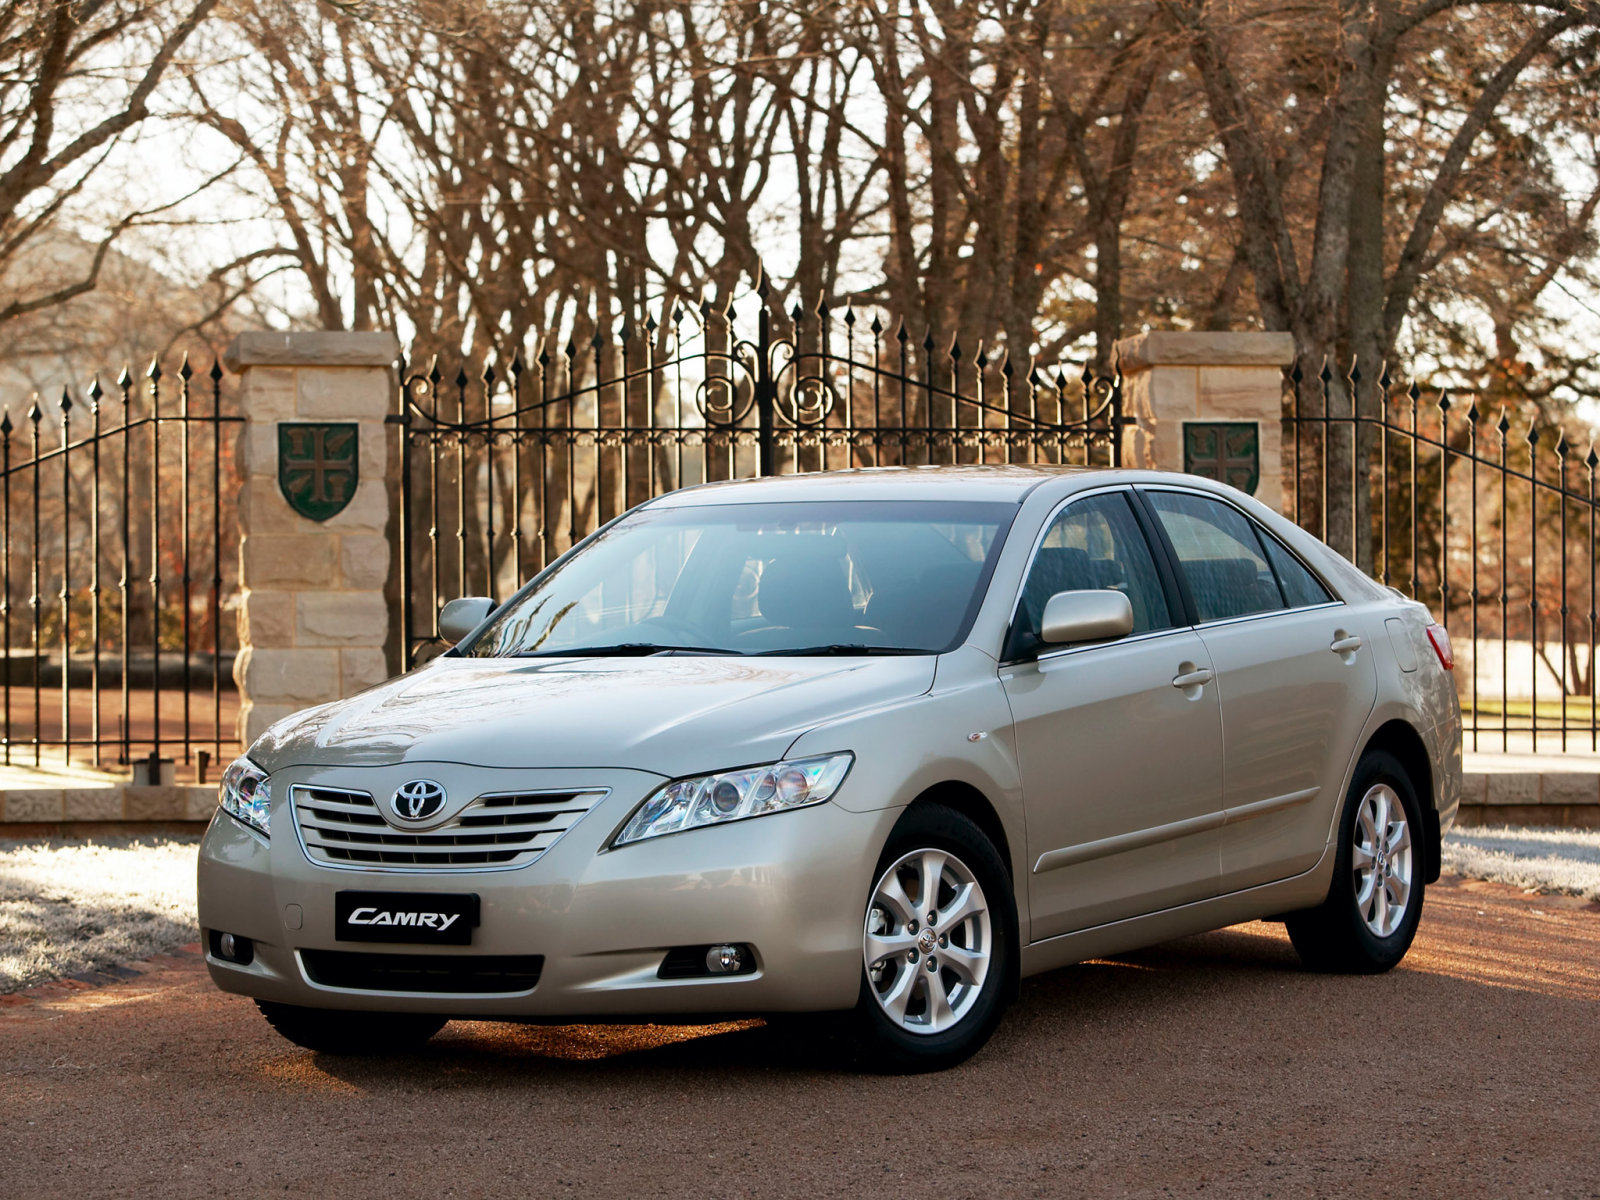 2008 toyota camry specifications details and data. Black Bedroom Furniture Sets. Home Design Ideas